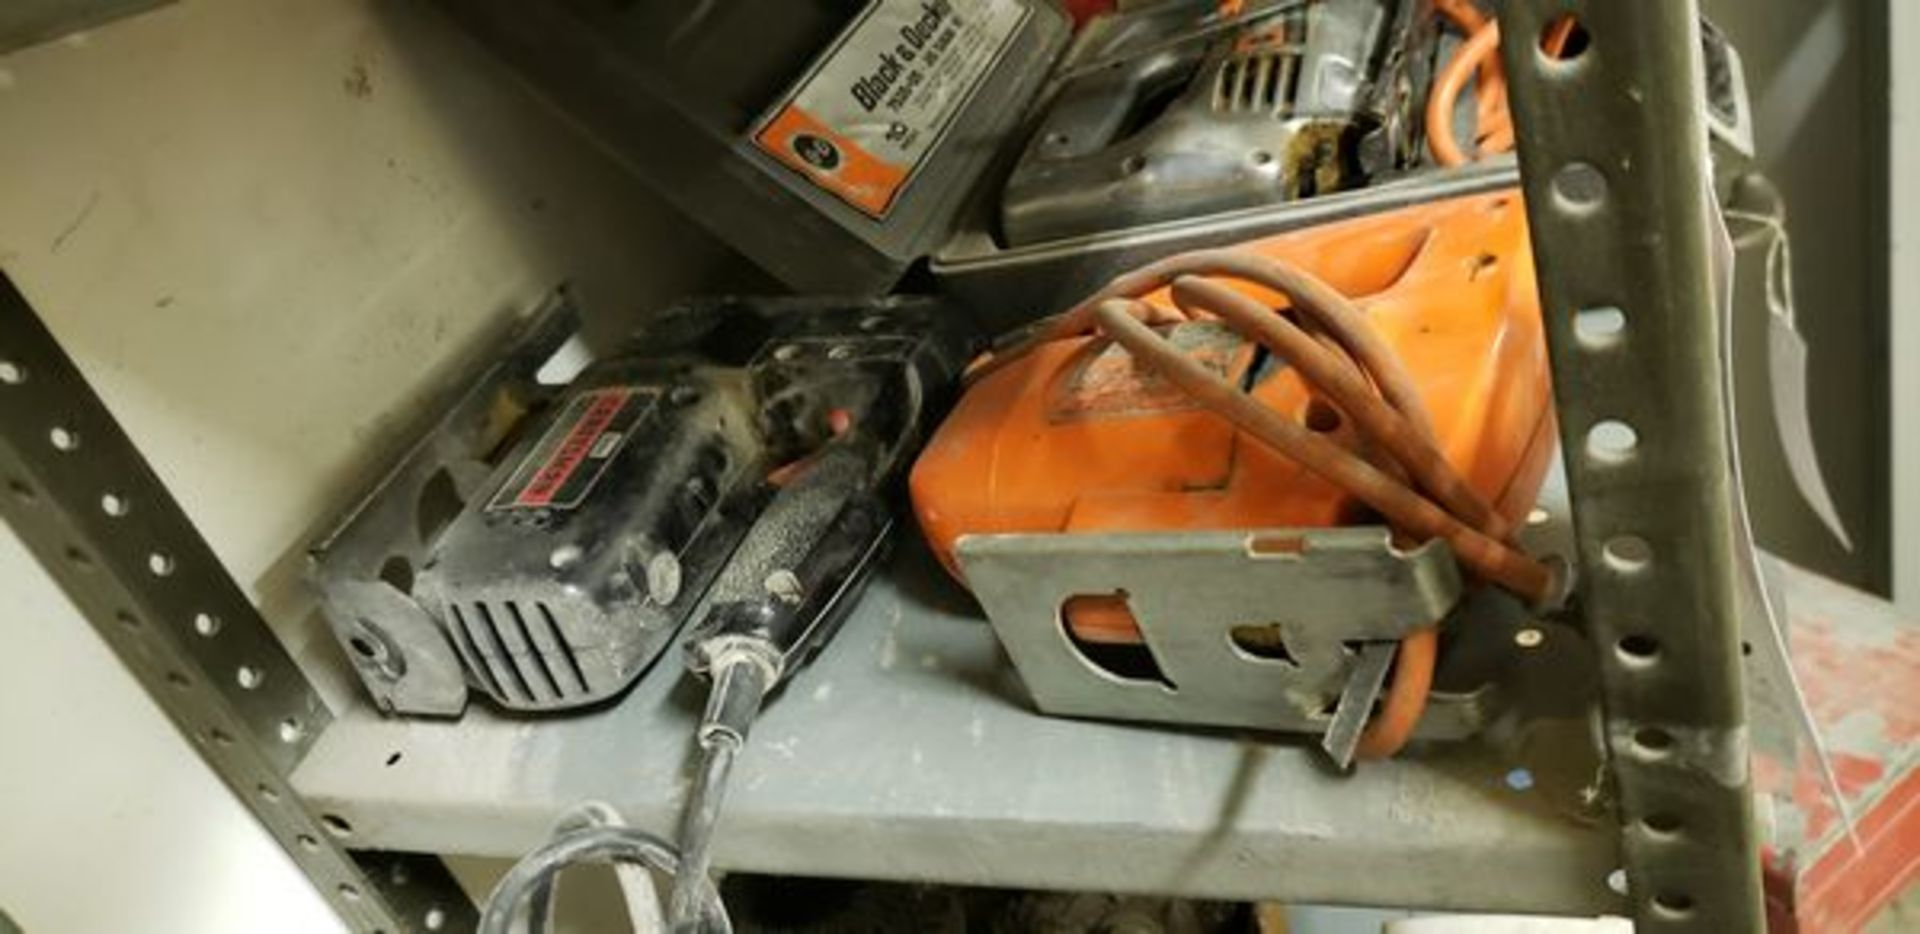 ASSORTED POWER TOOLS - 3 JIG SAWS AND 7.5 CIRCULAR SAW - Image 2 of 4